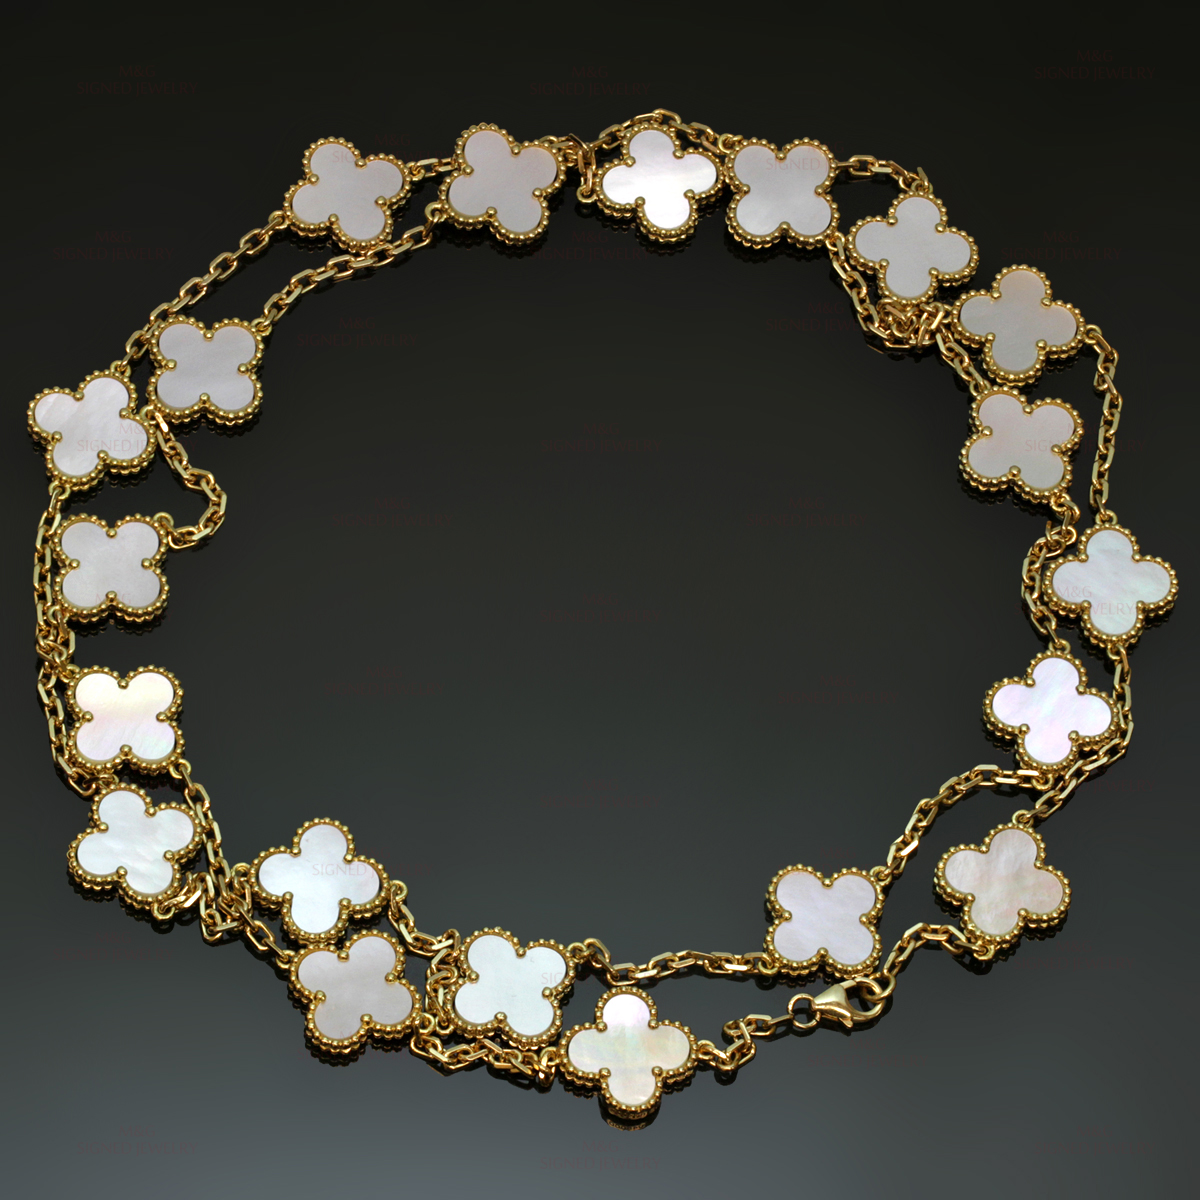 VAN CLEEF & ARPELS Vintage Alhambra Yellow Gold Mother-of-Pearl Charm Necklace